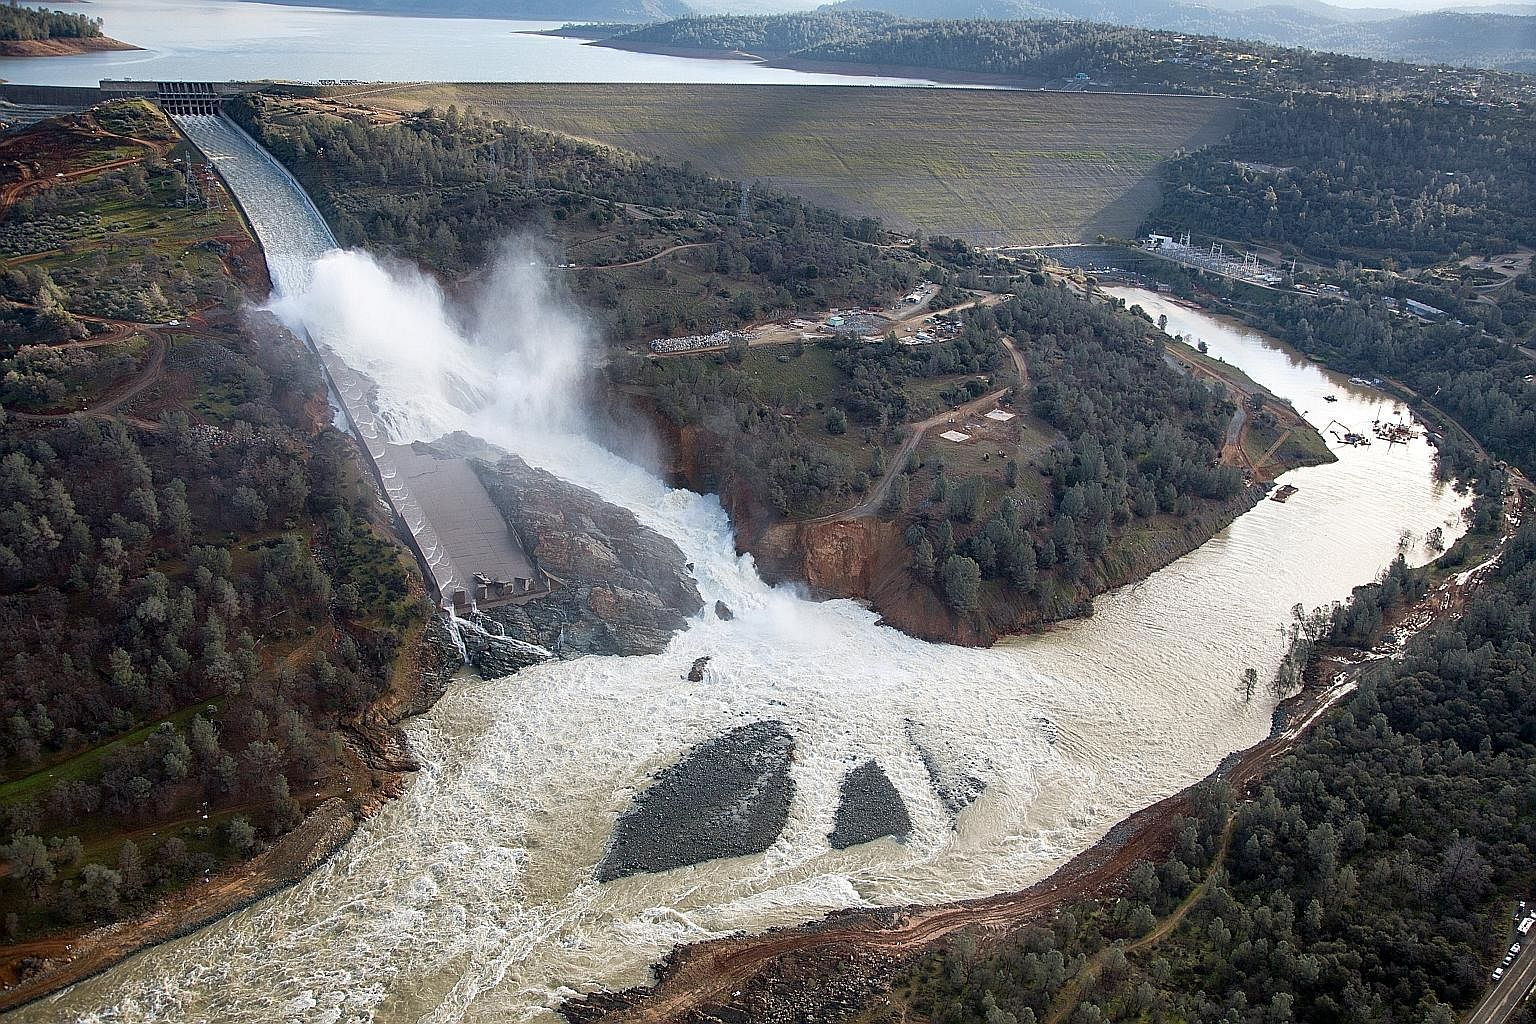 Nearly 200,000 residents had to evacuate their homes in February because of a damaged spillway at California's Oroville dam, built in 1968.